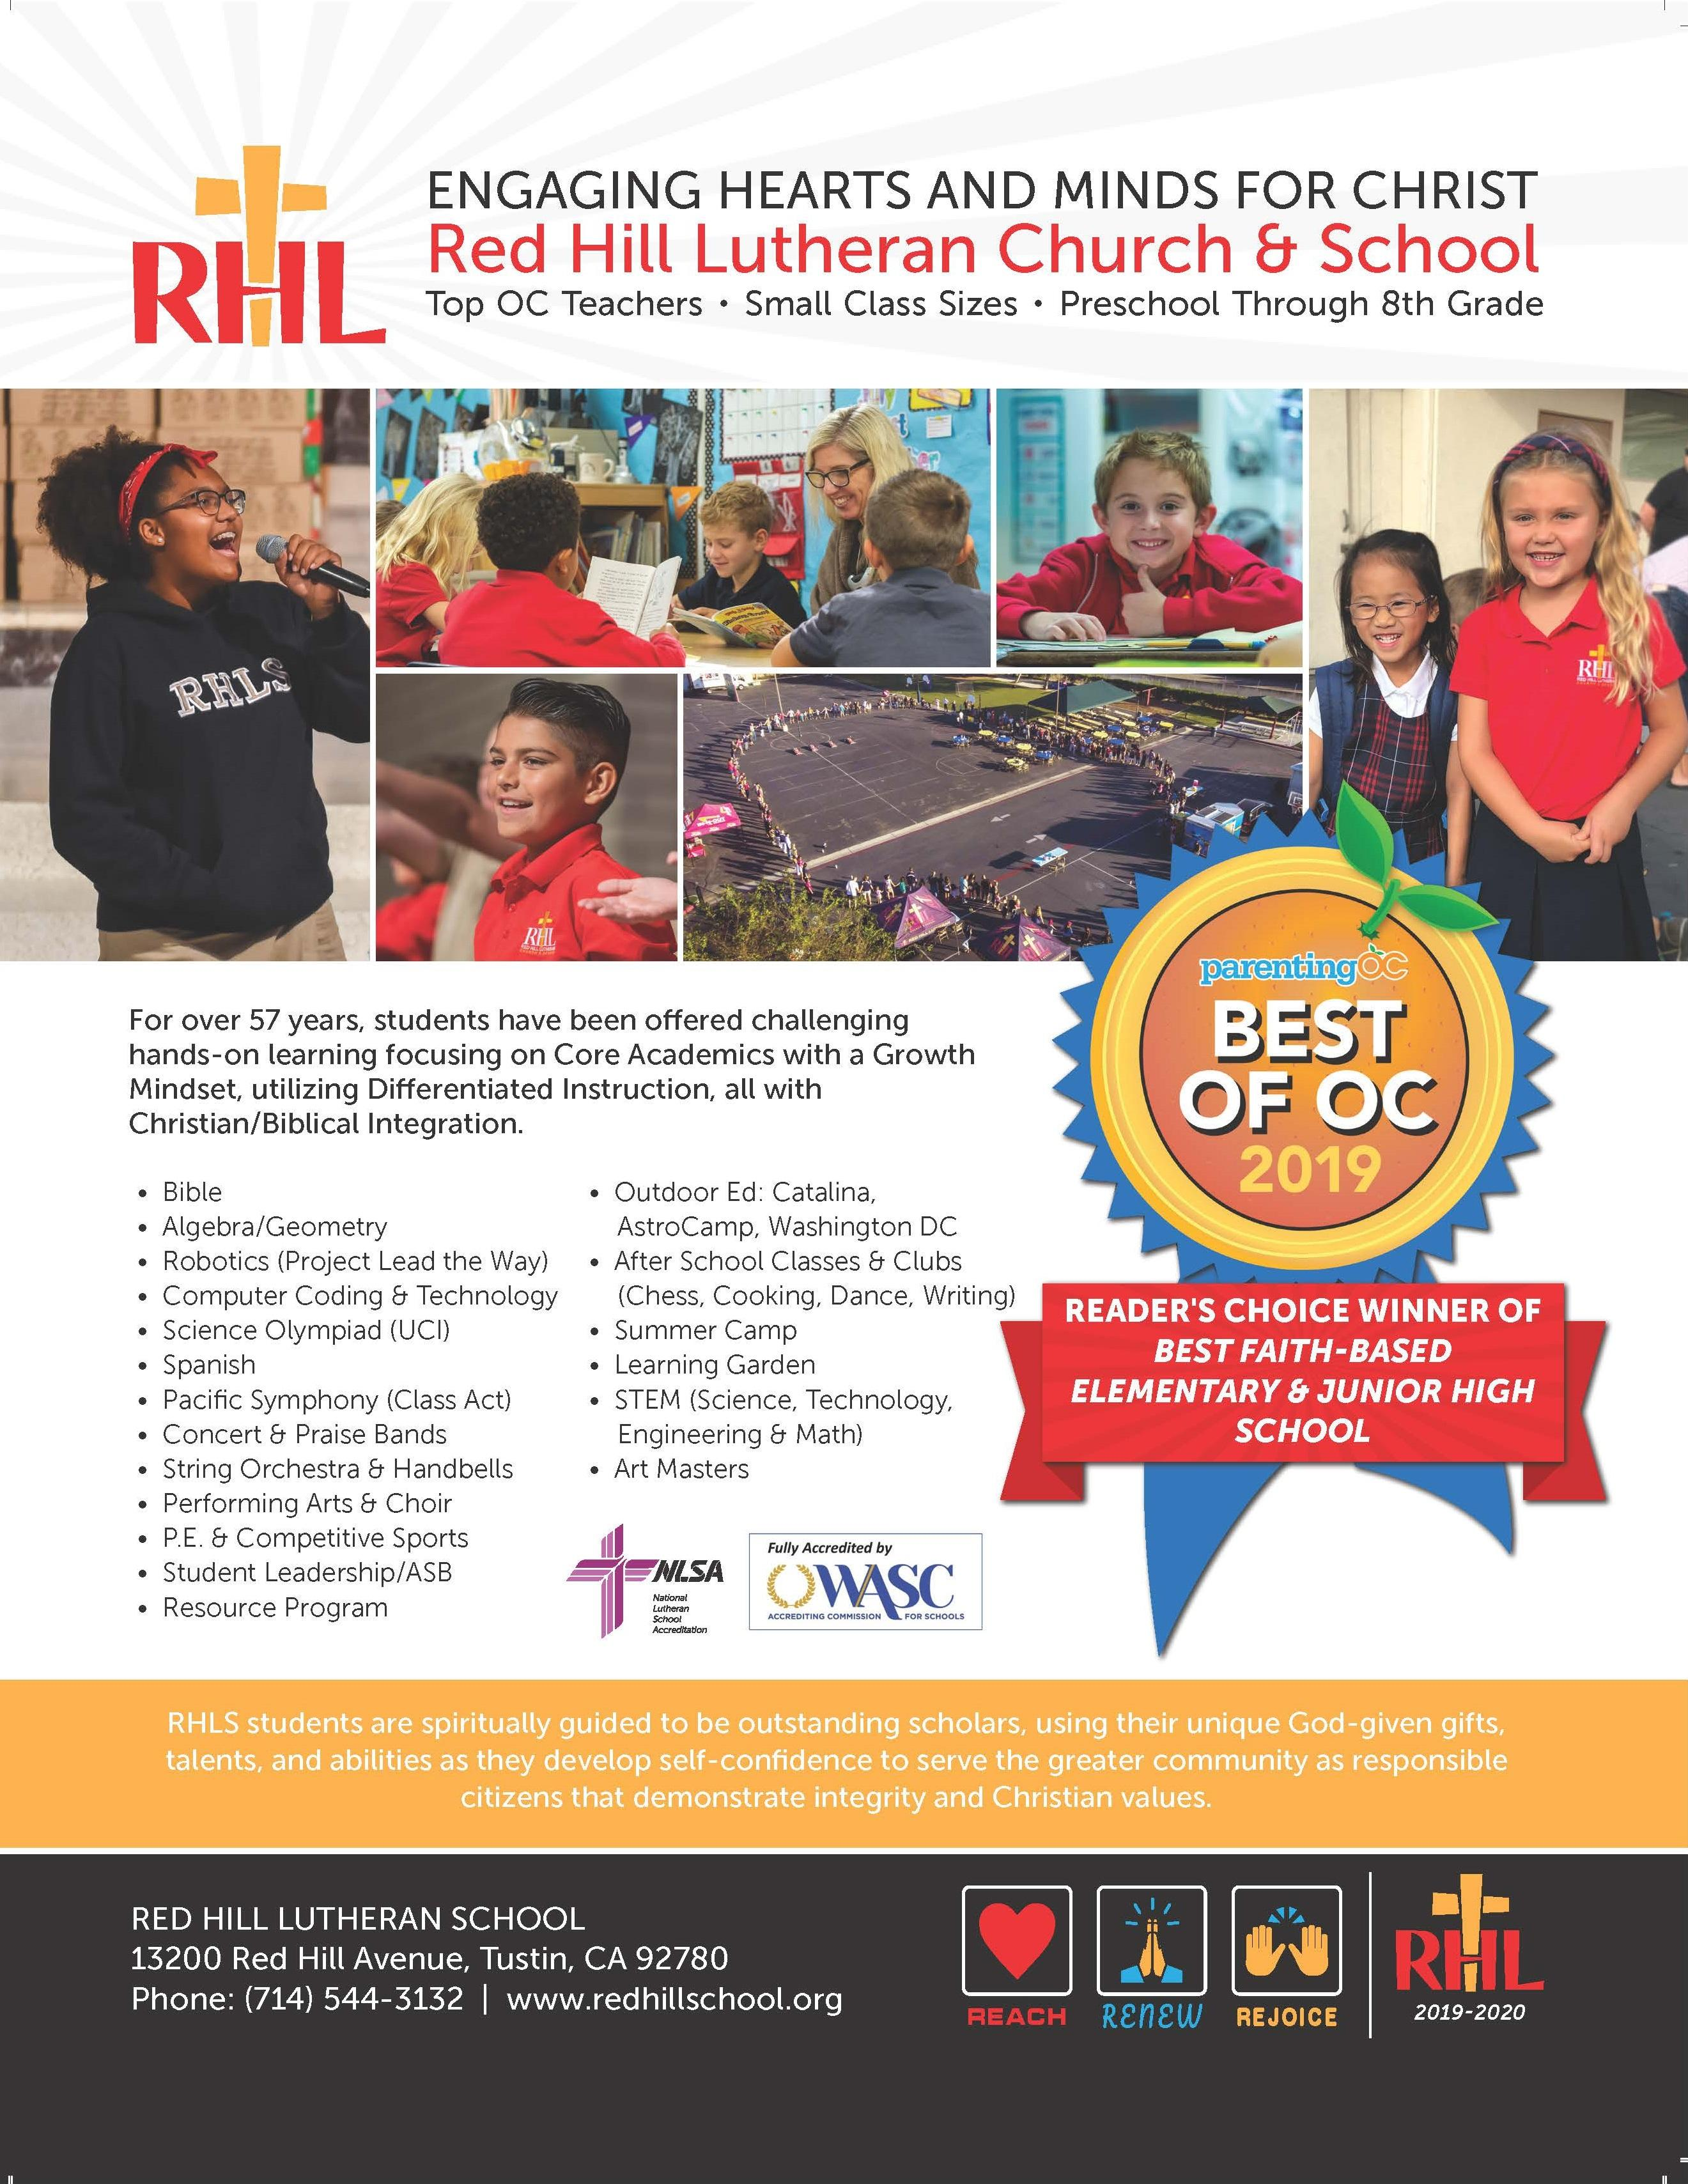 Parenting OC Magazine's just released Readers Choice Issue in which RHLS was voted as the Best Faith-Based Elementary/Junior High School in Orange County.